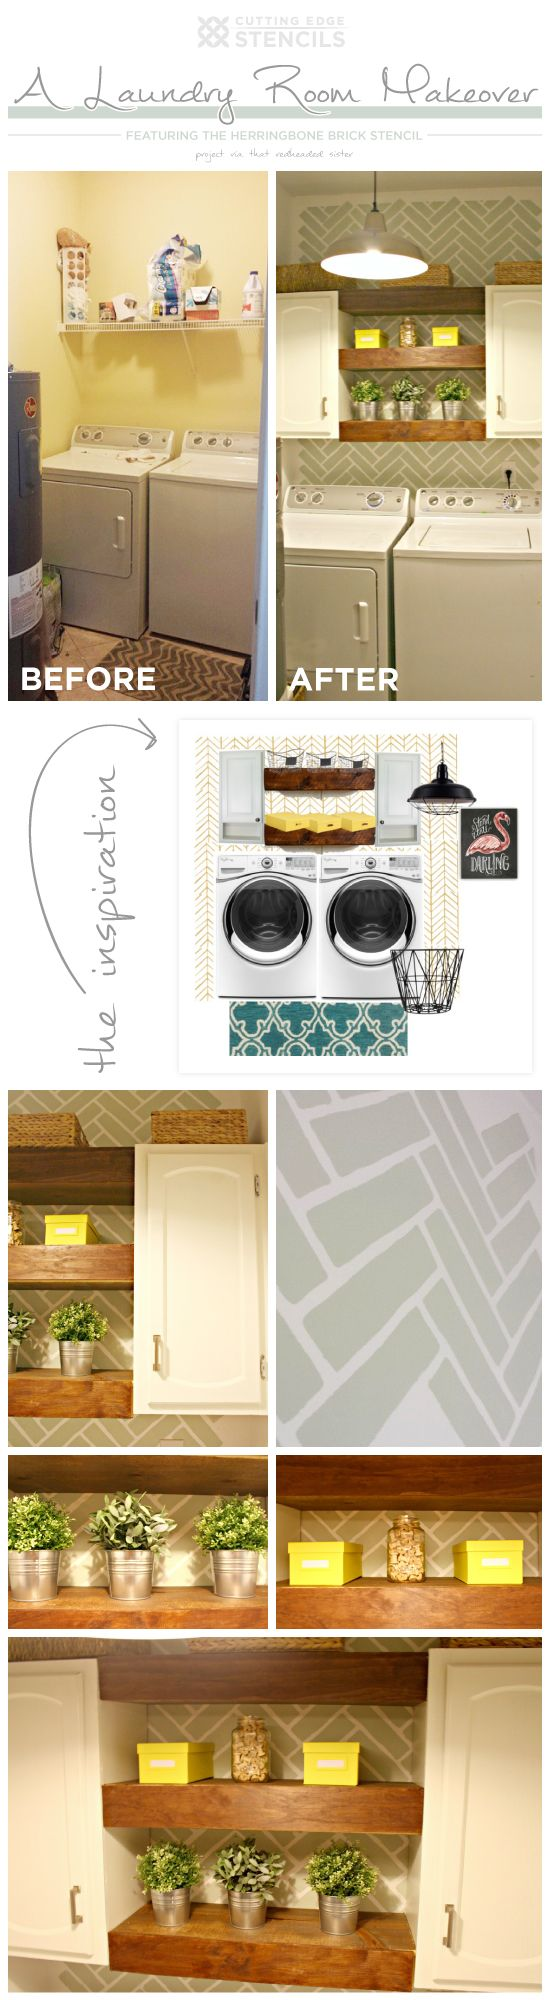 100 best laundry rooms images on pinterest room laundry and mud cutting edge stencils shares a diy stenciled laundry room makeover using the herringbone brick stencil pattern